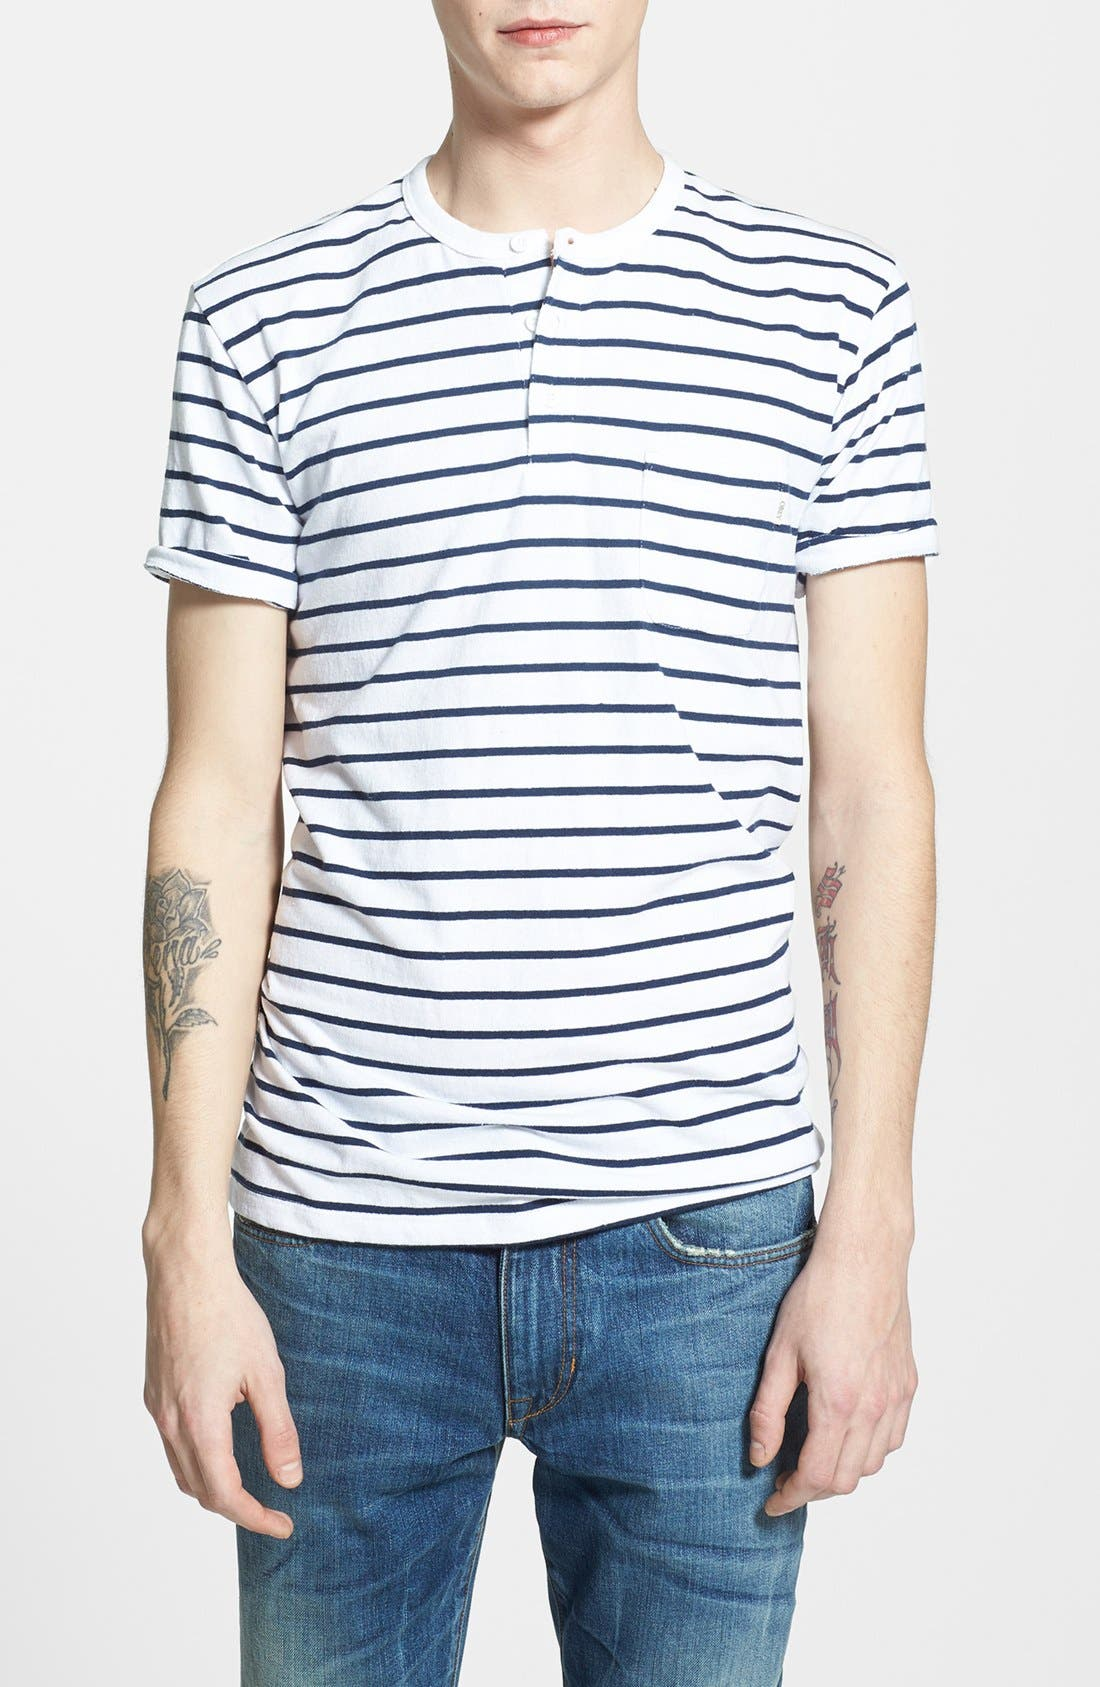 Alternate Image 1 Selected - Obey 'Charter' Short Sleeve Stripe Henley T-Shirt